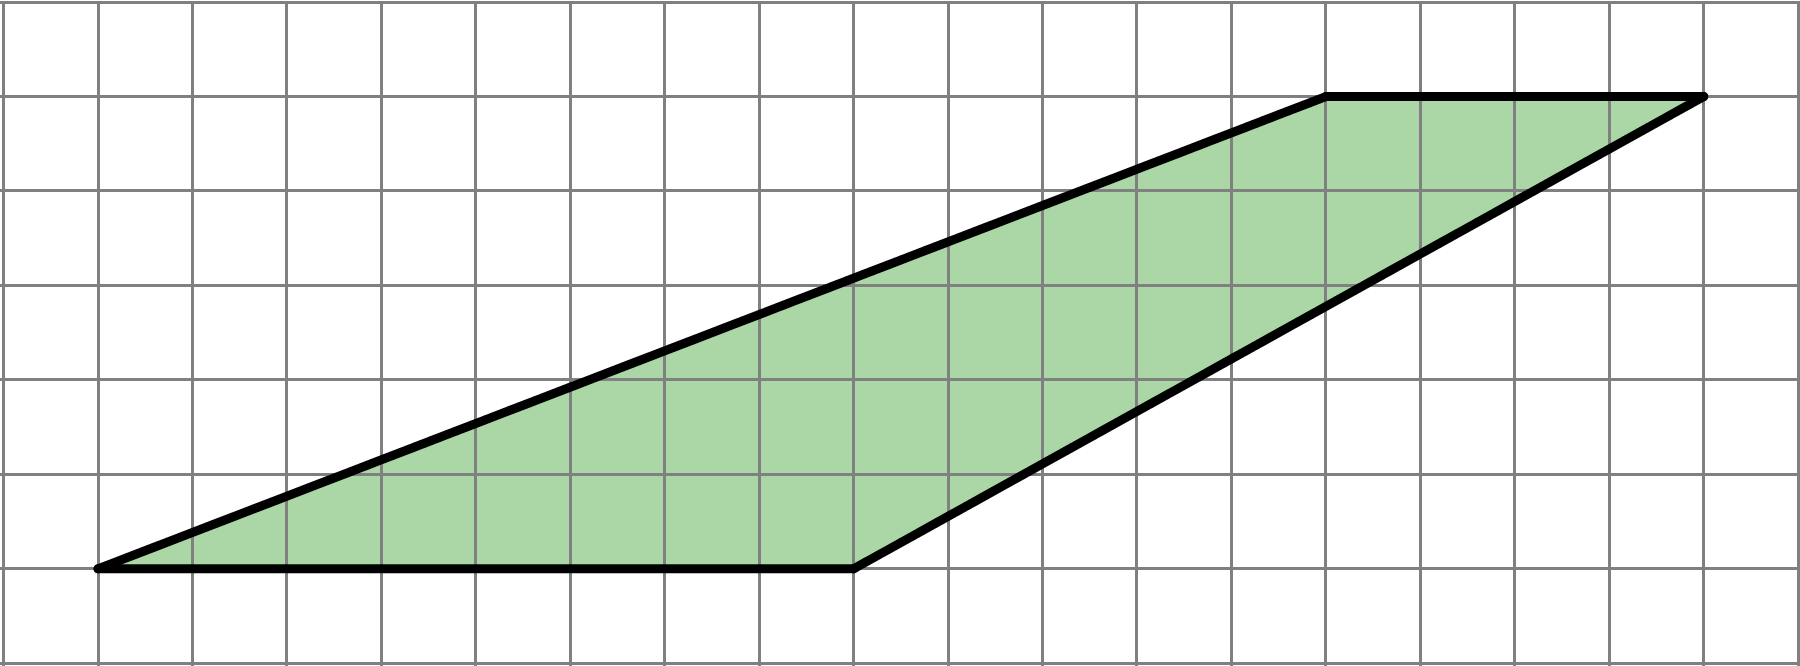 A quadrilateral with a bottom side length of 8 units, a top side length of 4 units. The left side ascends 5 units while moving right 13 units, and the right side ascends 5 units while moving right 9 units.